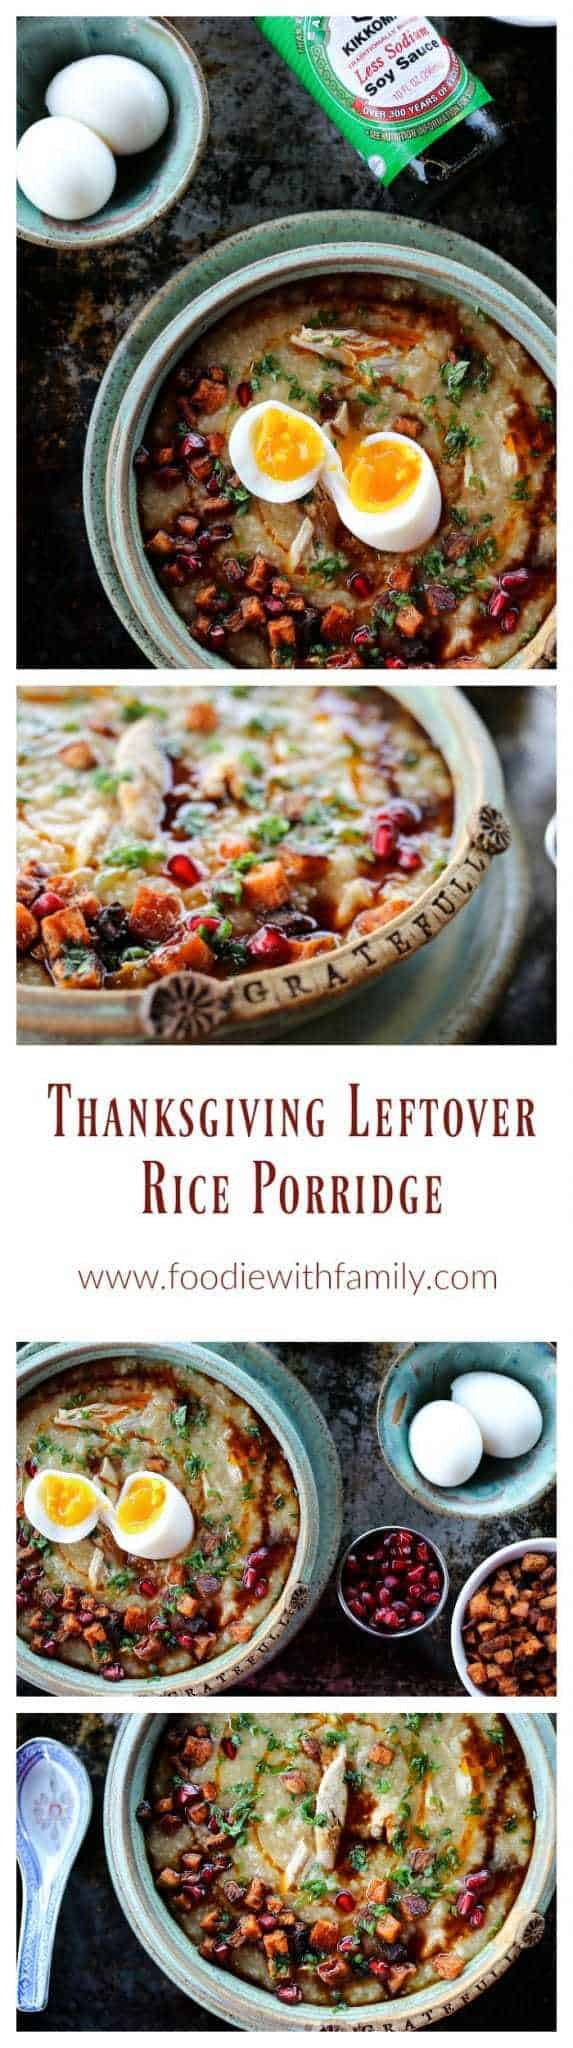 Leftover Thanksgiving Rice Porridge a.k.a. congee or juk is made with your picked over Thanksgiving turkey carcass, some water, some rice, and some soy sauce. It's magic.